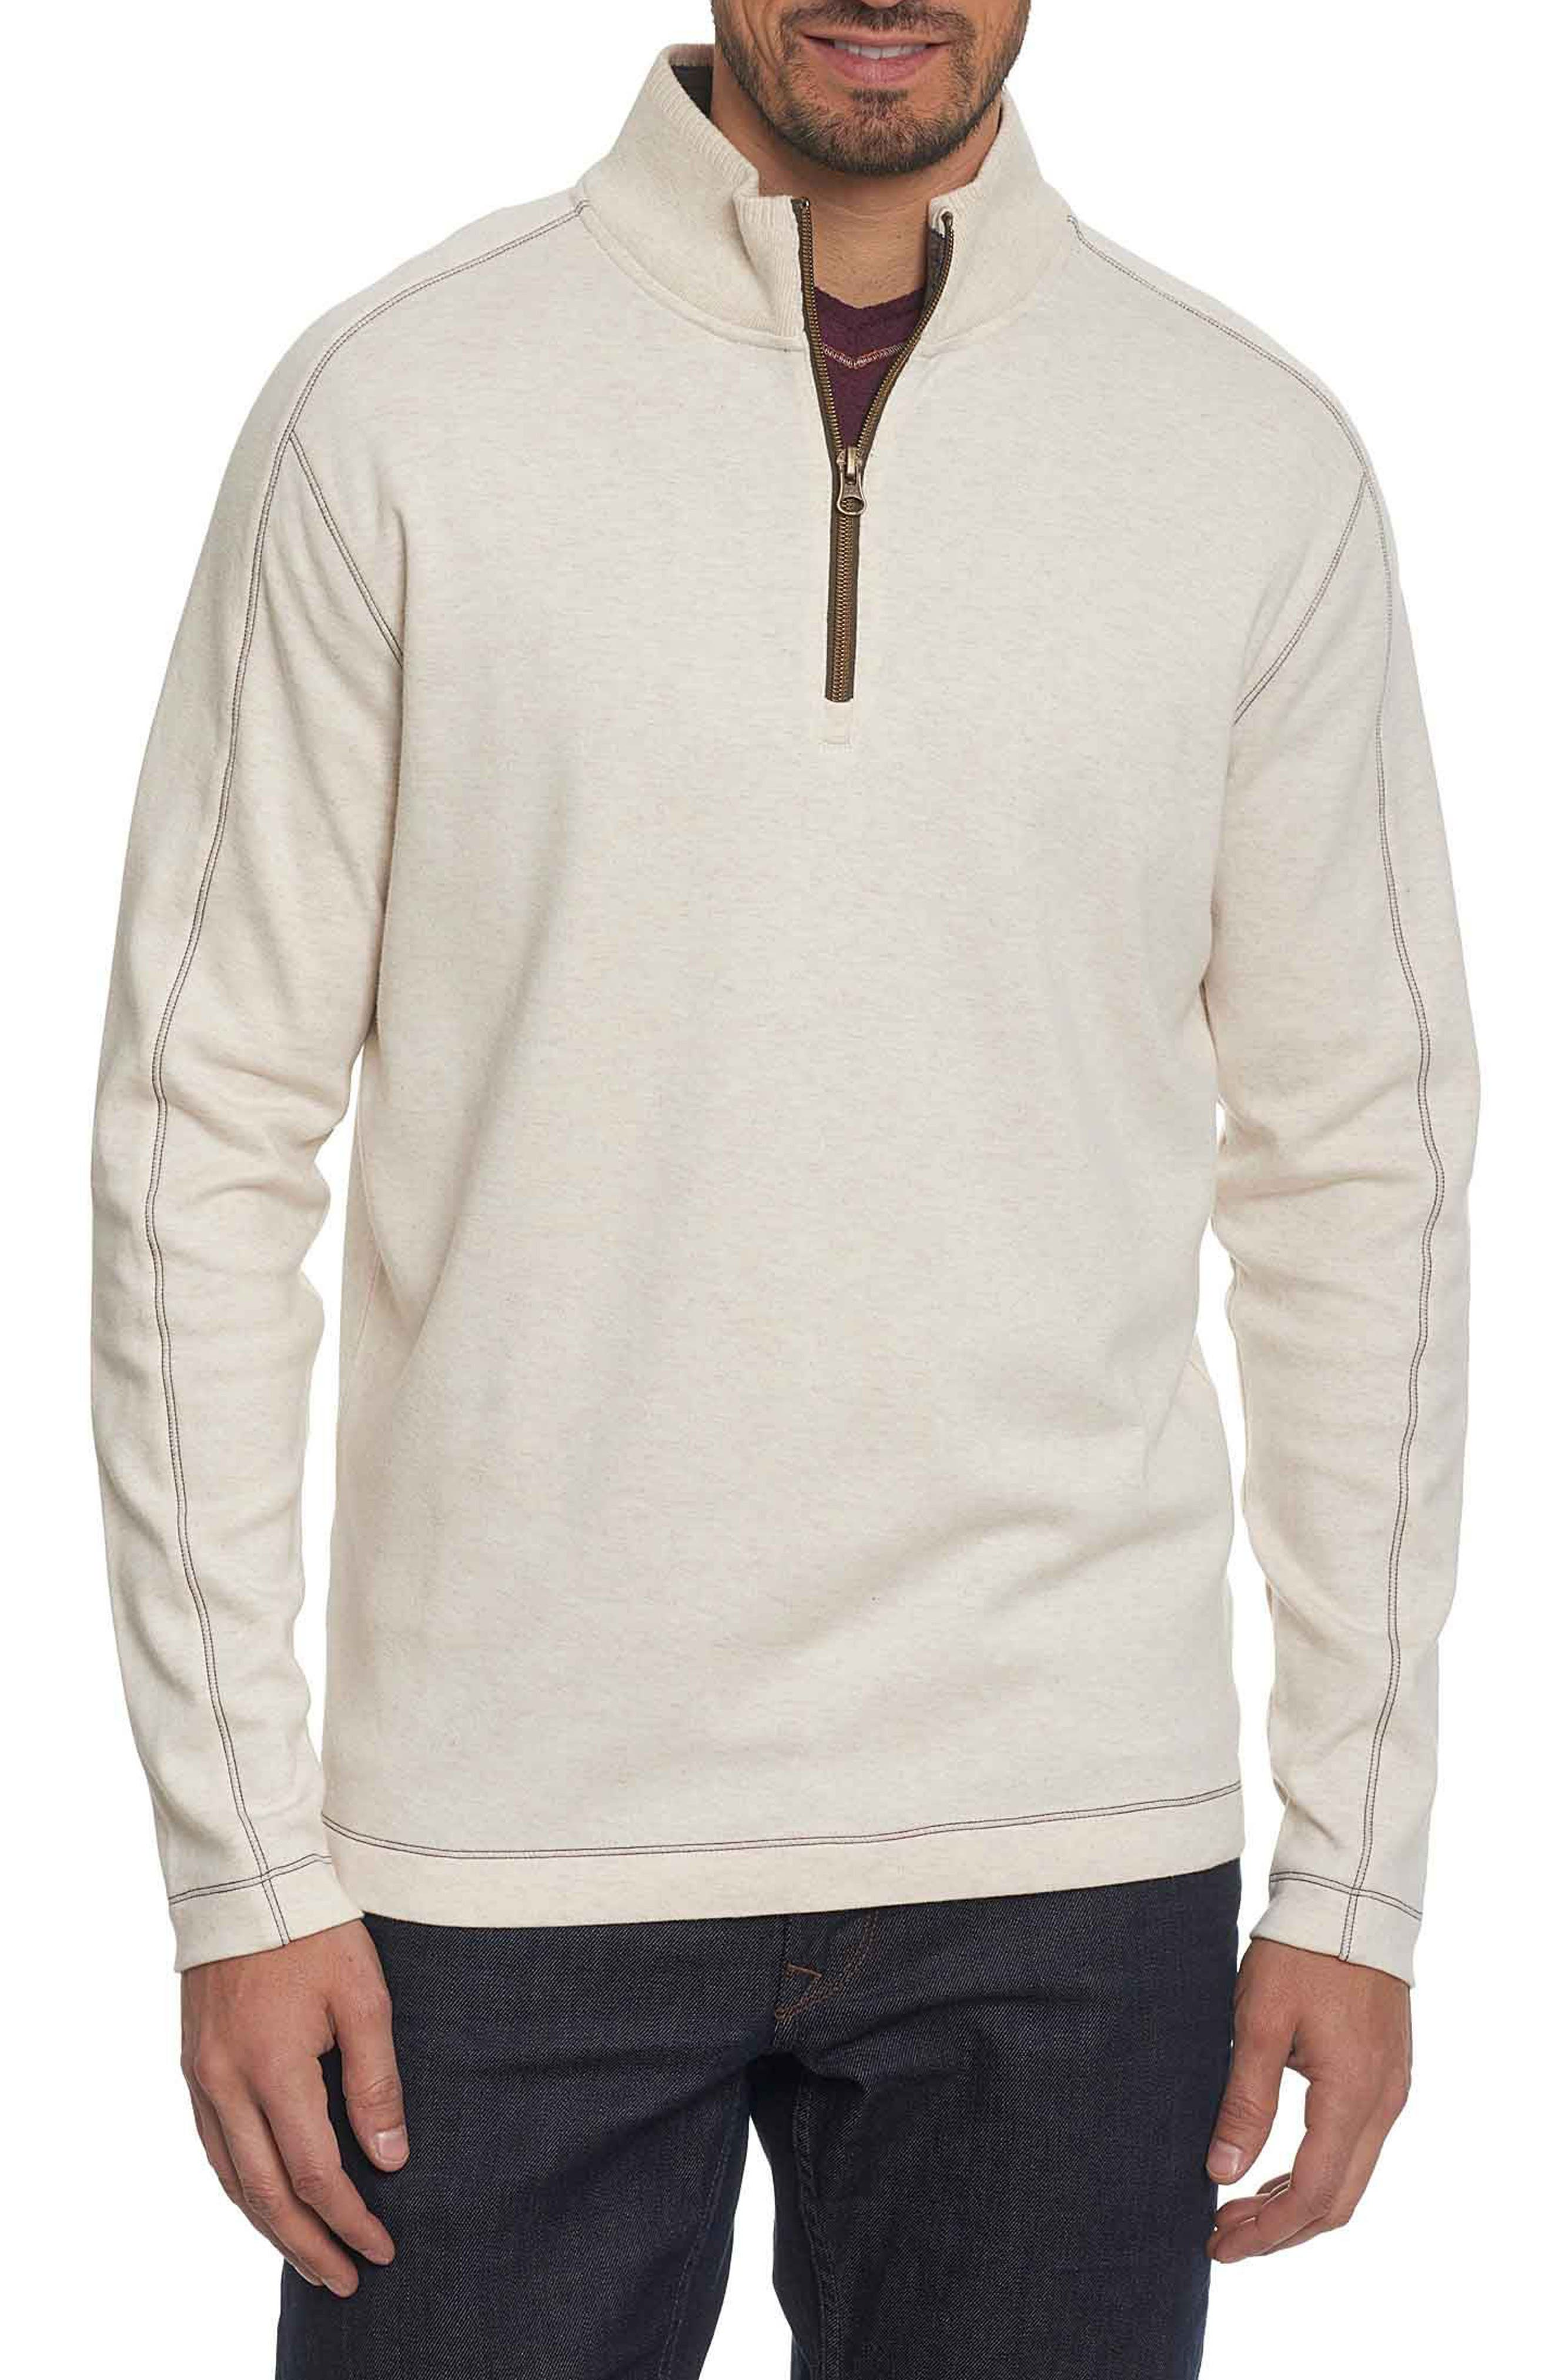 'Elia' Regular Fit Quarter Zip Pullover,                             Main thumbnail 1, color,                             Heather White